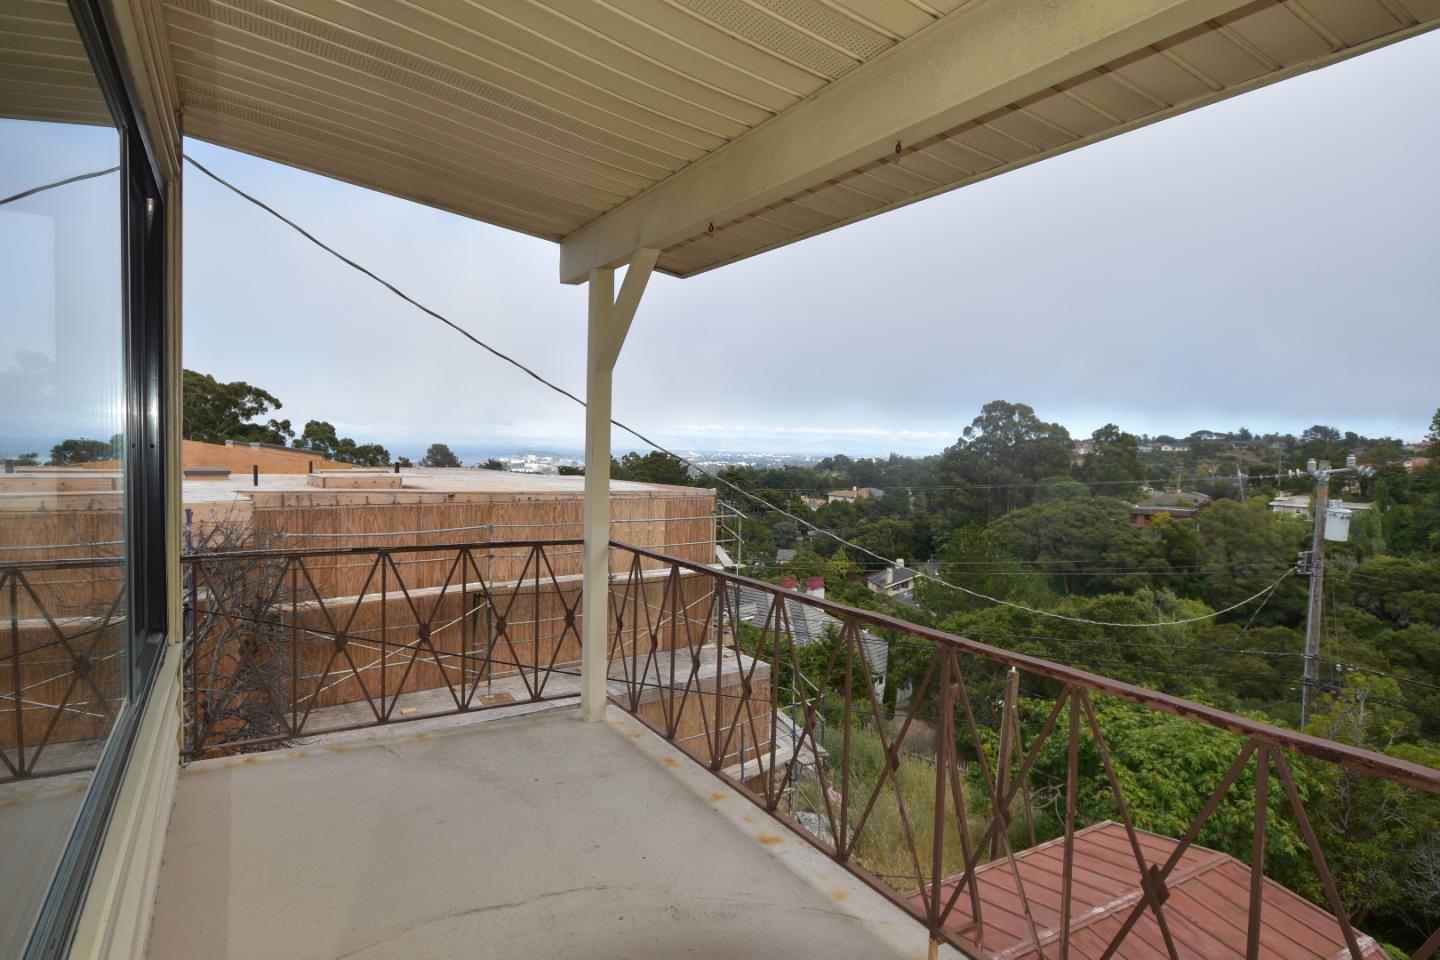 Additional photo for property listing at 1327 Vista Grande  Millbrae, California 94030 United States